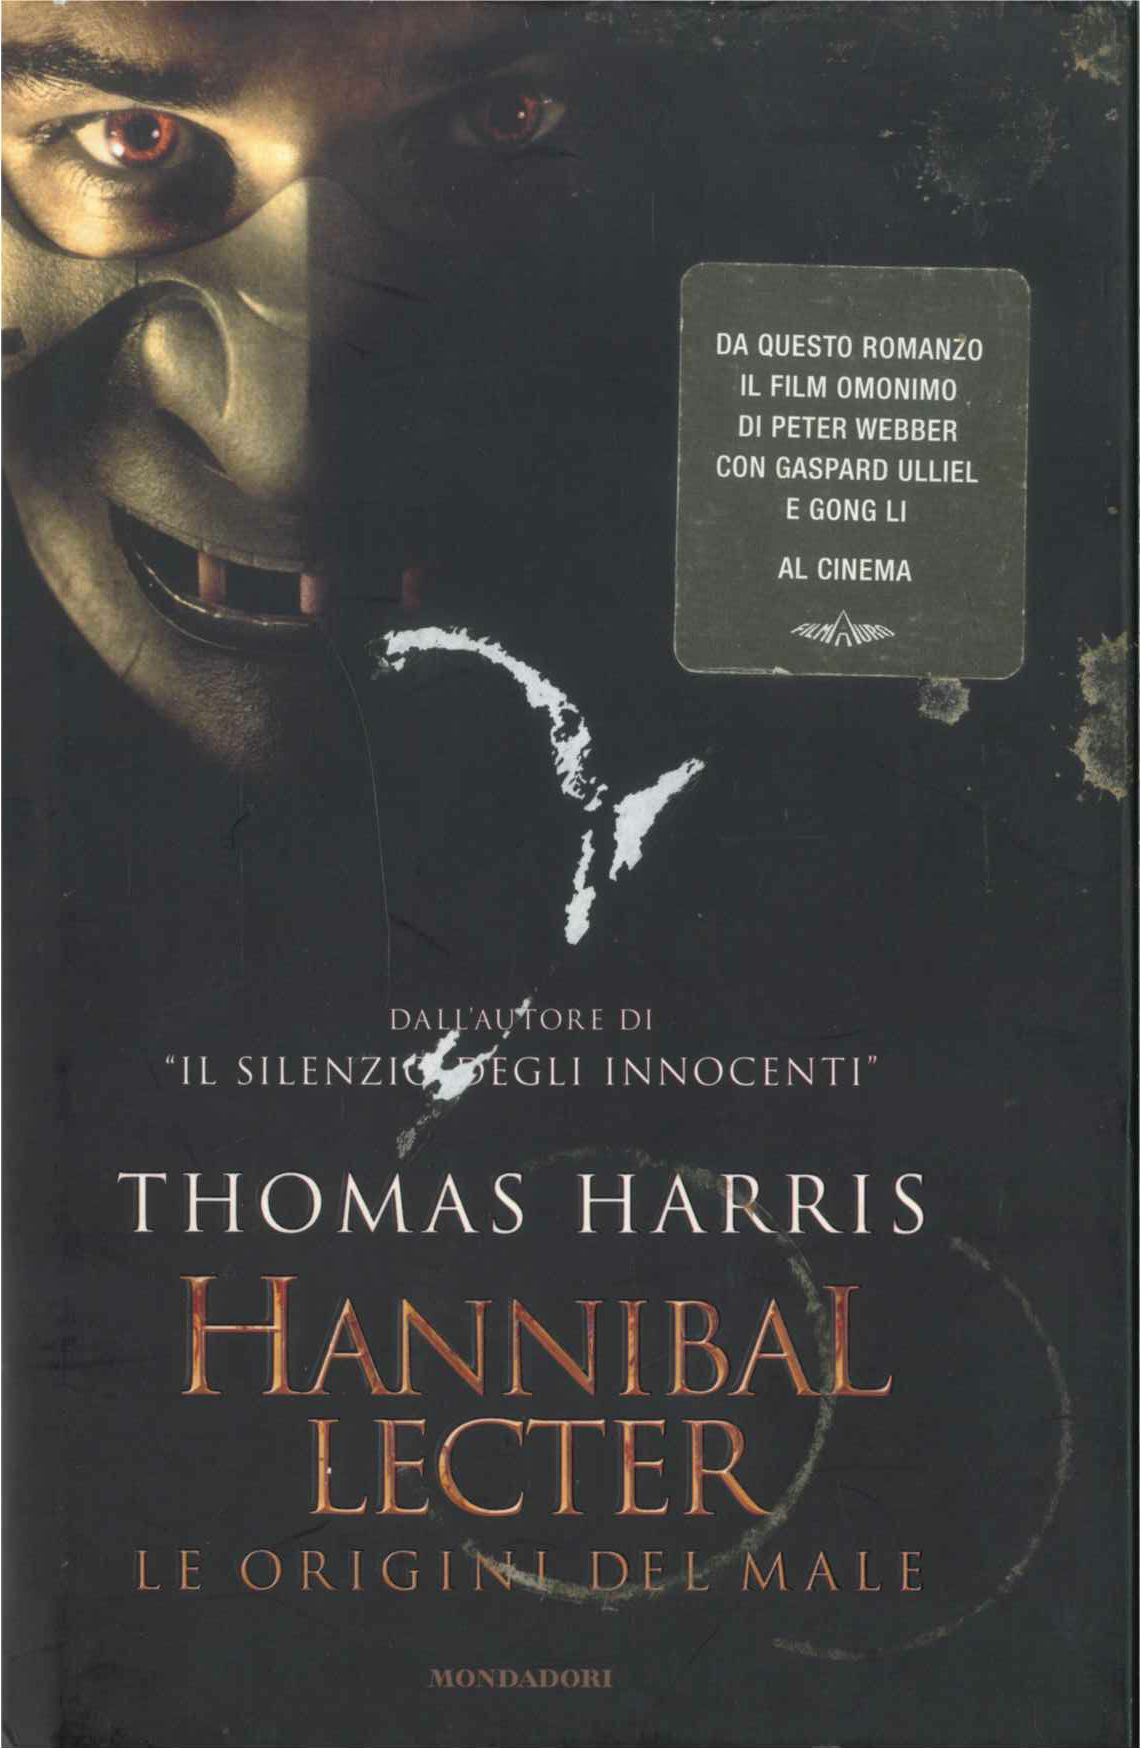 HANNIBAL LECTER - THOMAS HARRIS